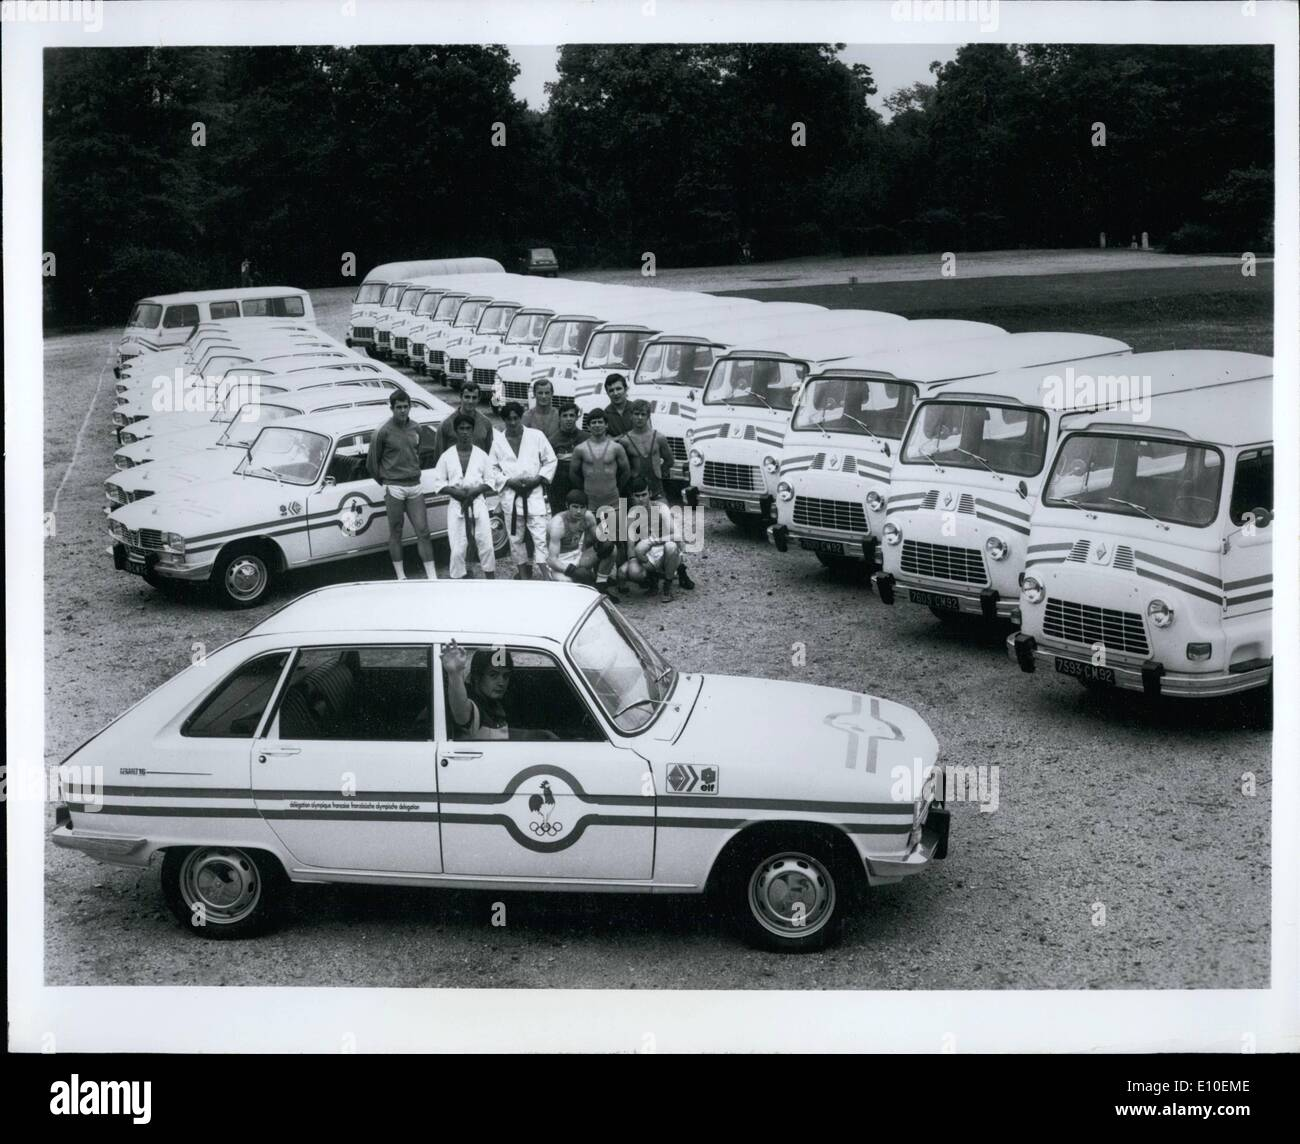 Aug. 08, 1972 - Renault chosen for the Olympics?: Hardly, since motor sport is not included in the Olympic schedule. - Stock Image